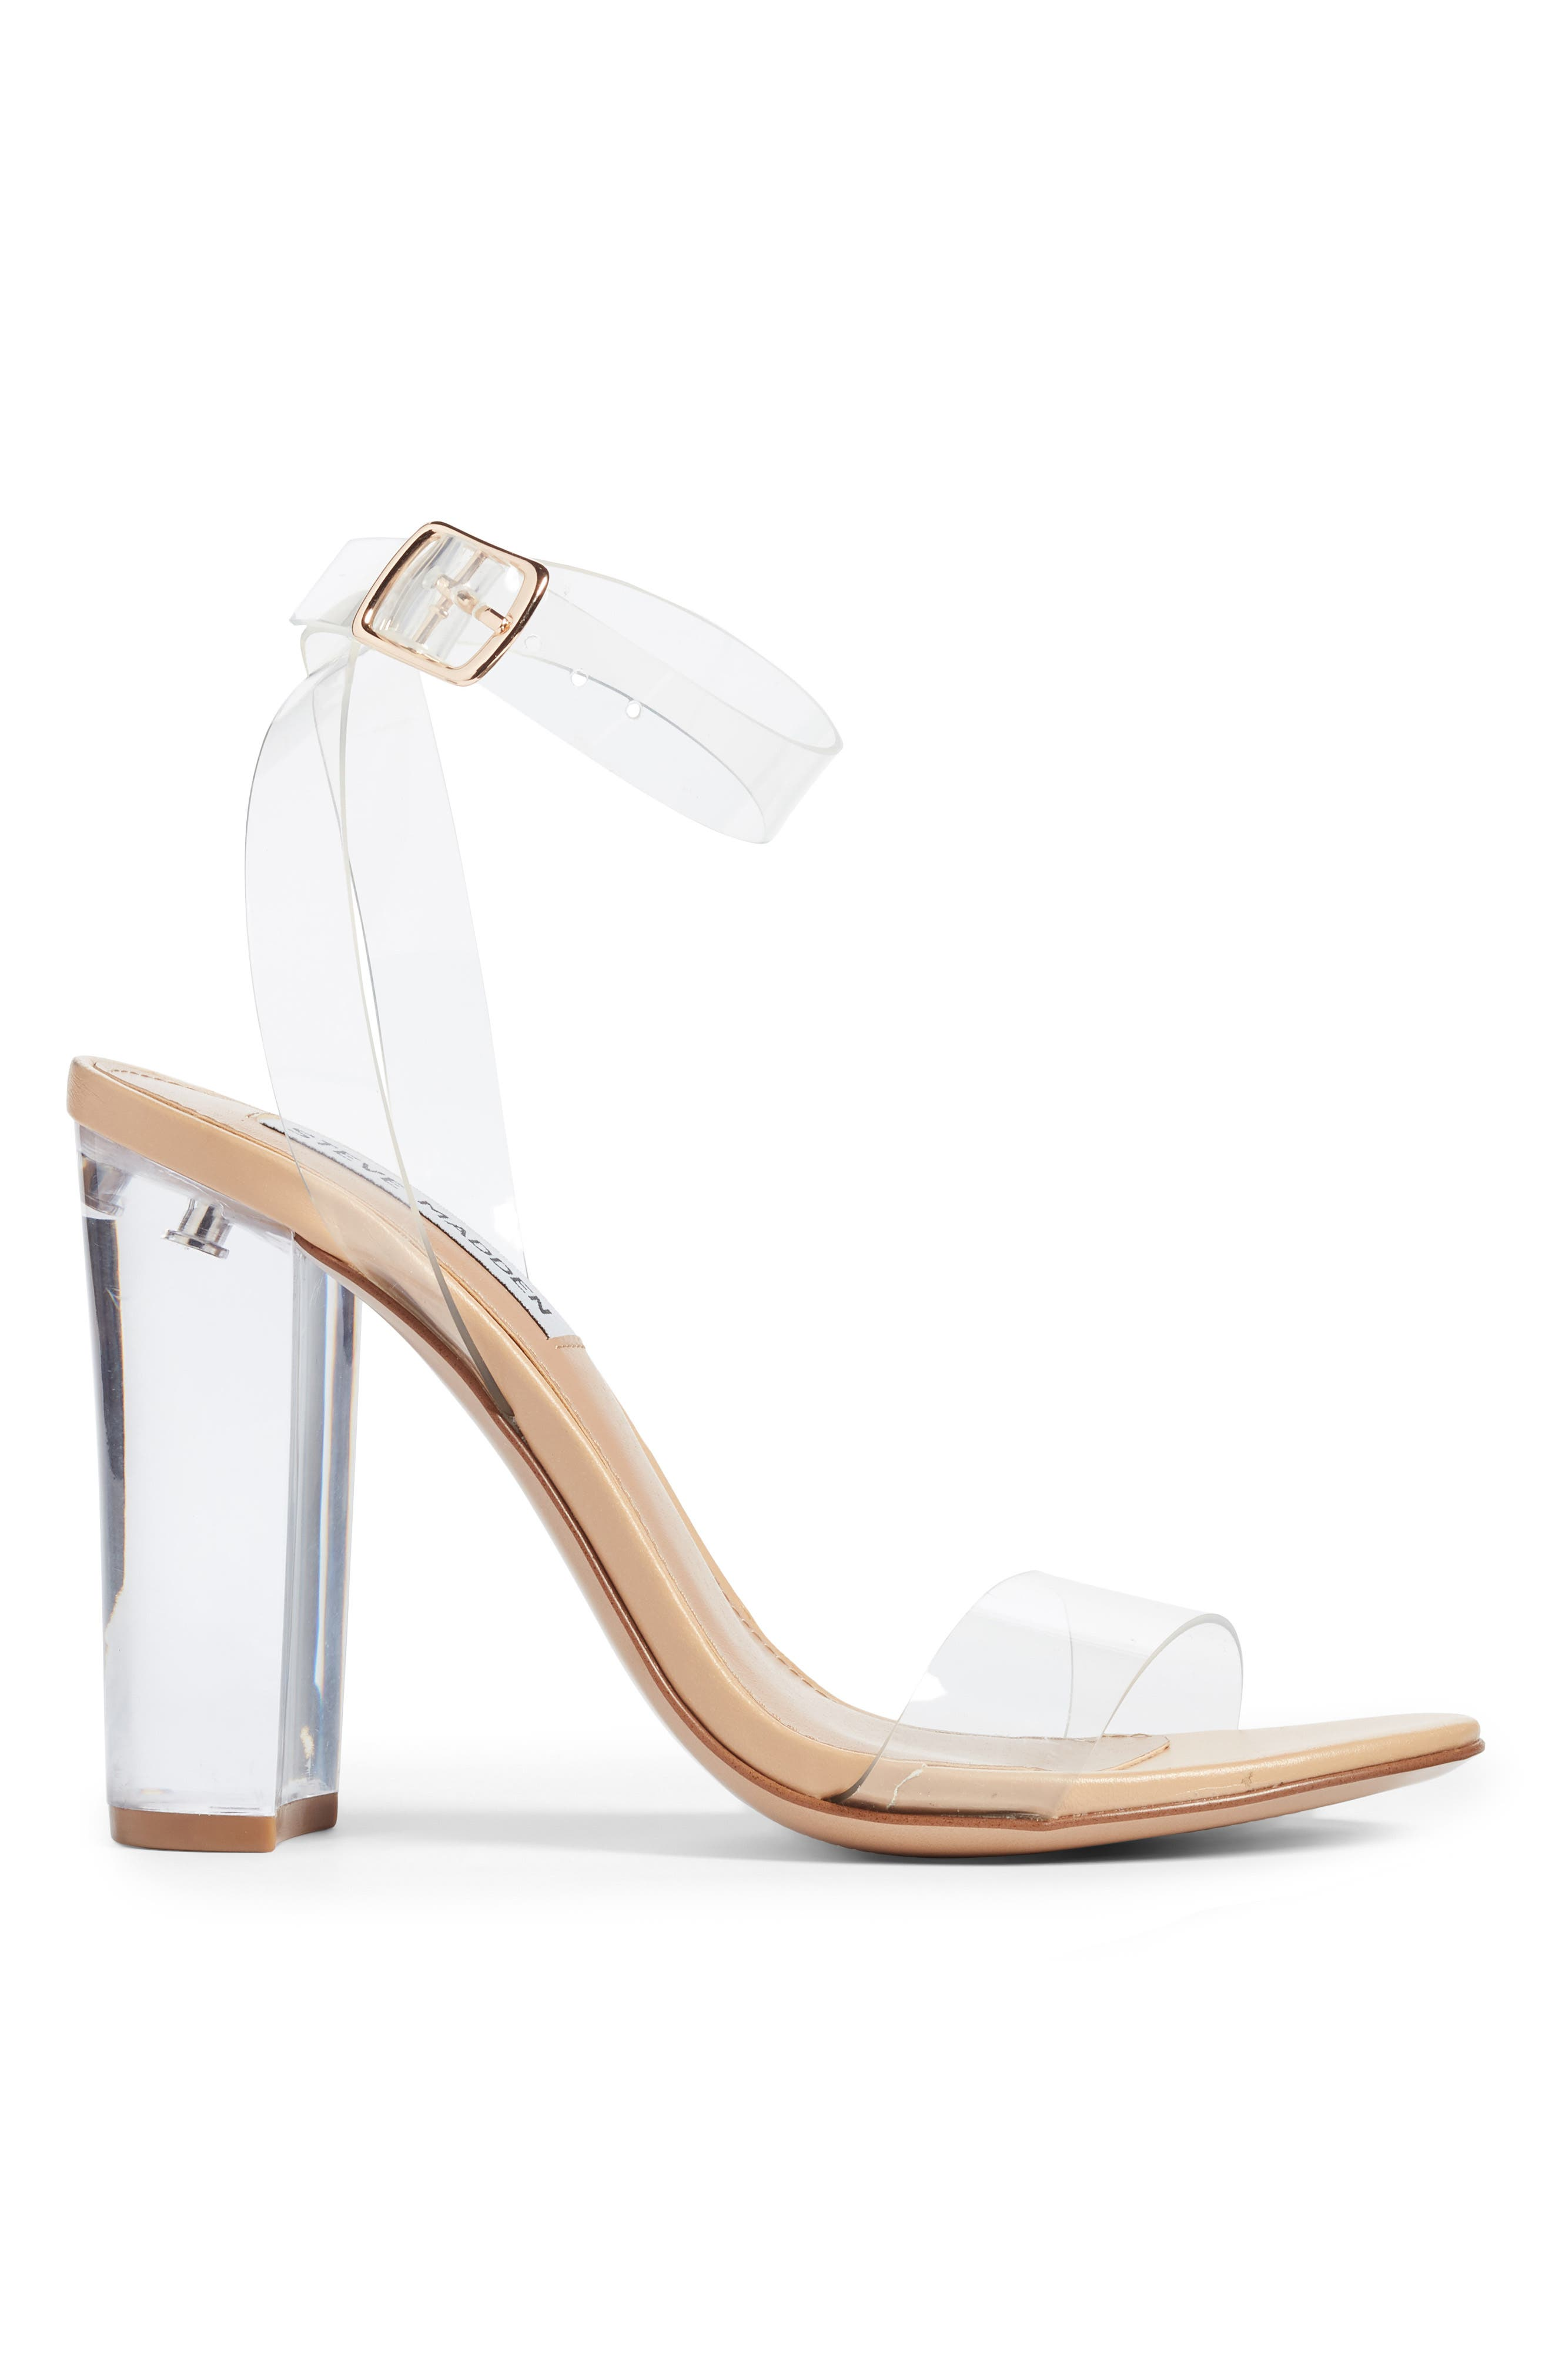 STEVE MADDEN, Camille Clear Sandal, Alternate thumbnail 3, color, CLEAR